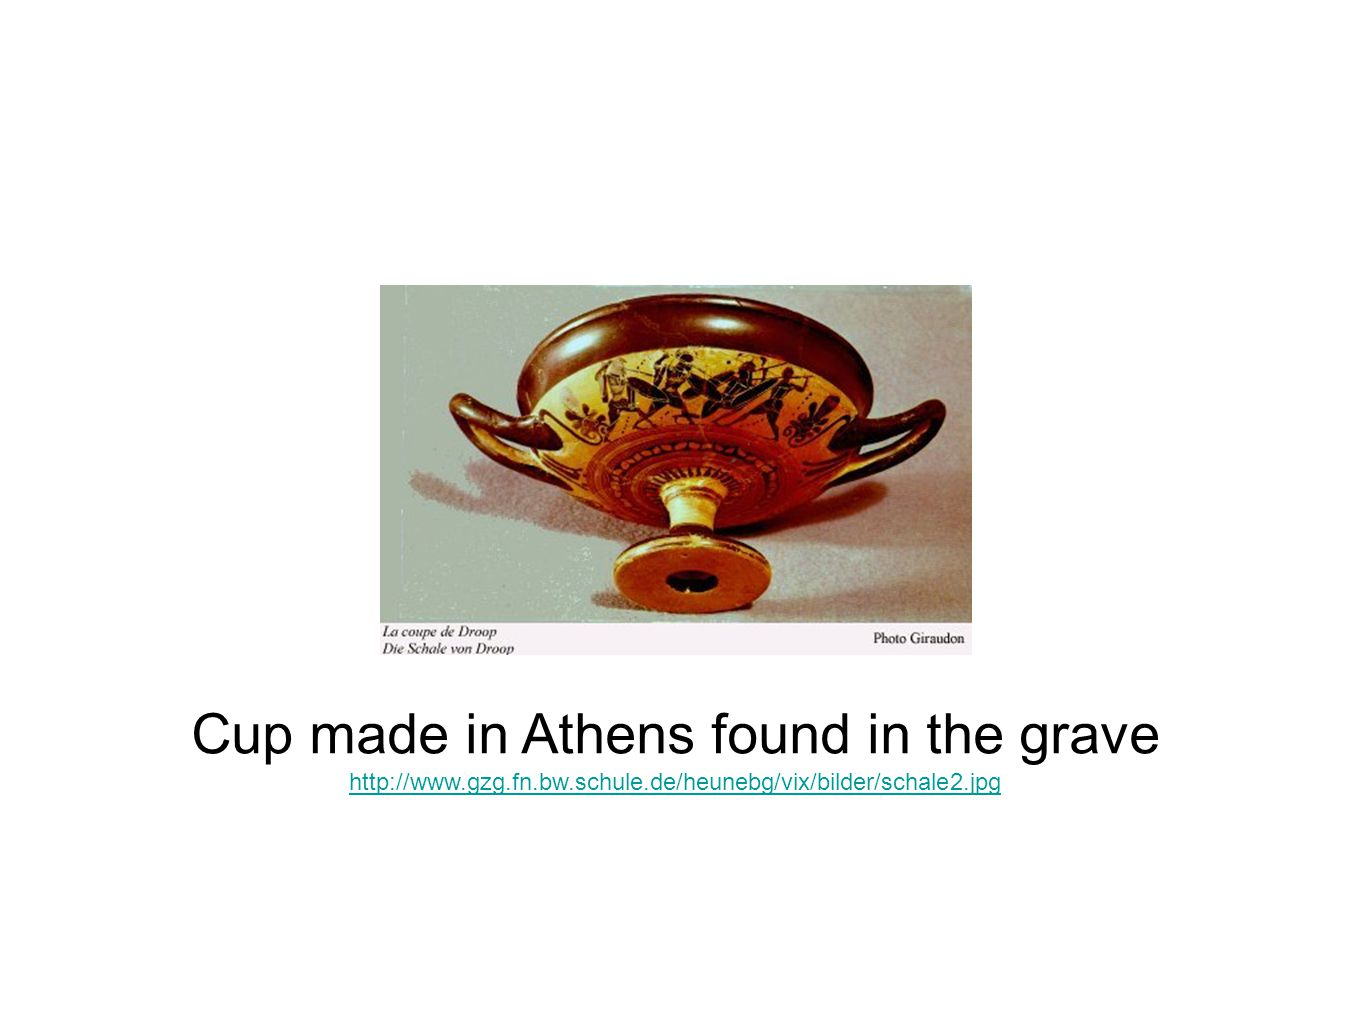 Cup made in Athens found in the grave